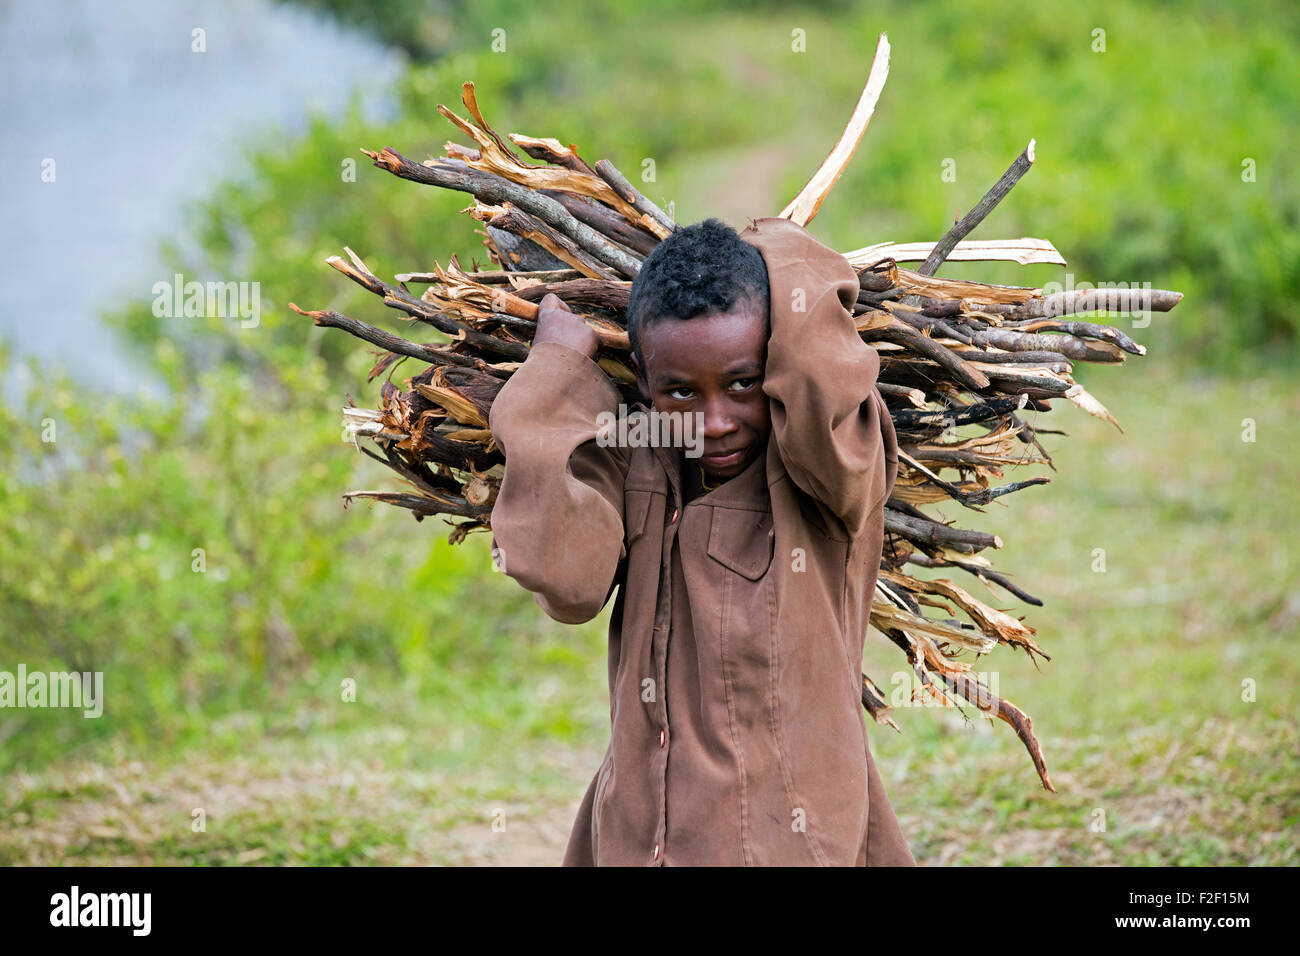 Close up portrait of Malagasy child carrying bundle of firewood on its back, Vatovavy-Fitovinany, Madagascar, Southeast - Stock Image